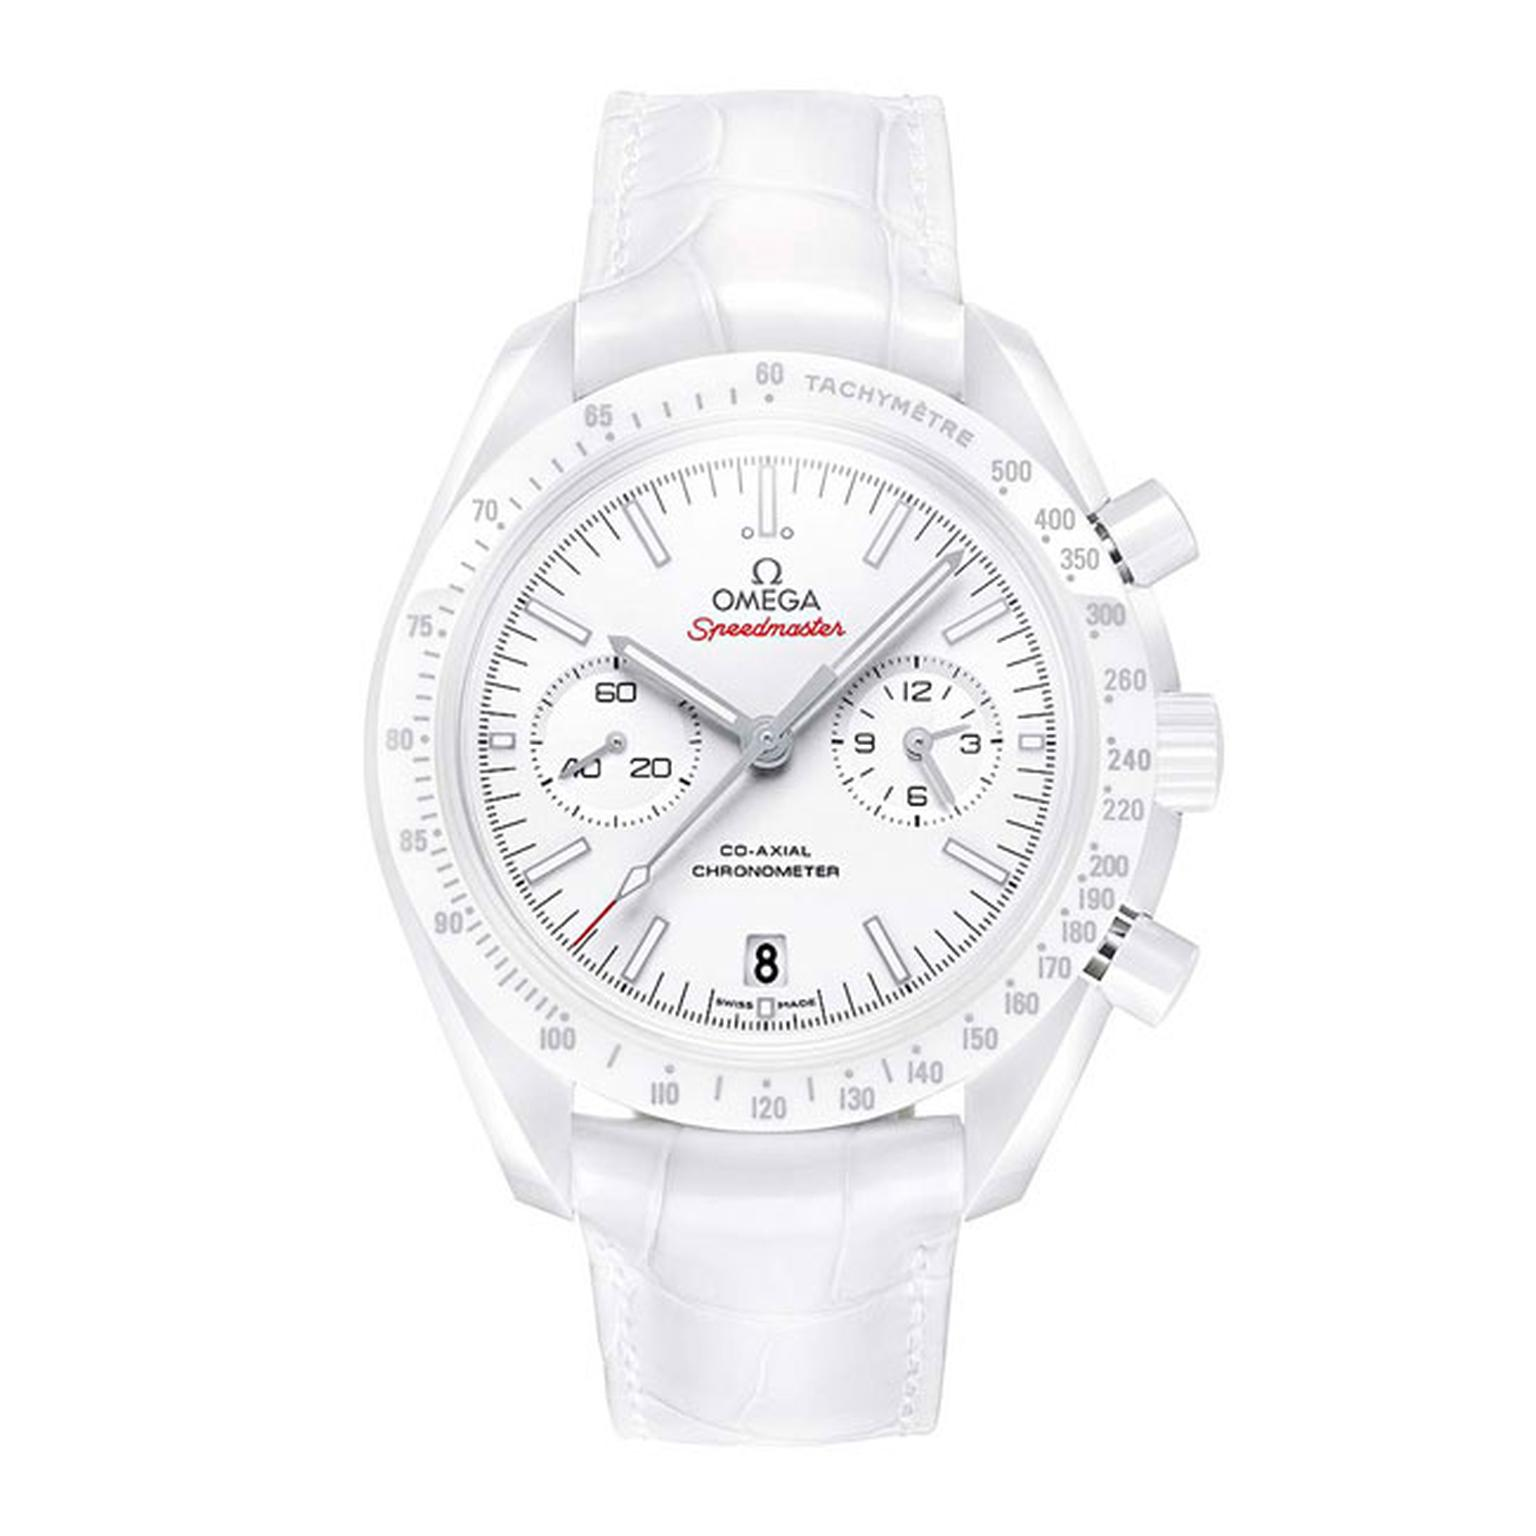 Omega Ladies White Side of the Moon watch_main